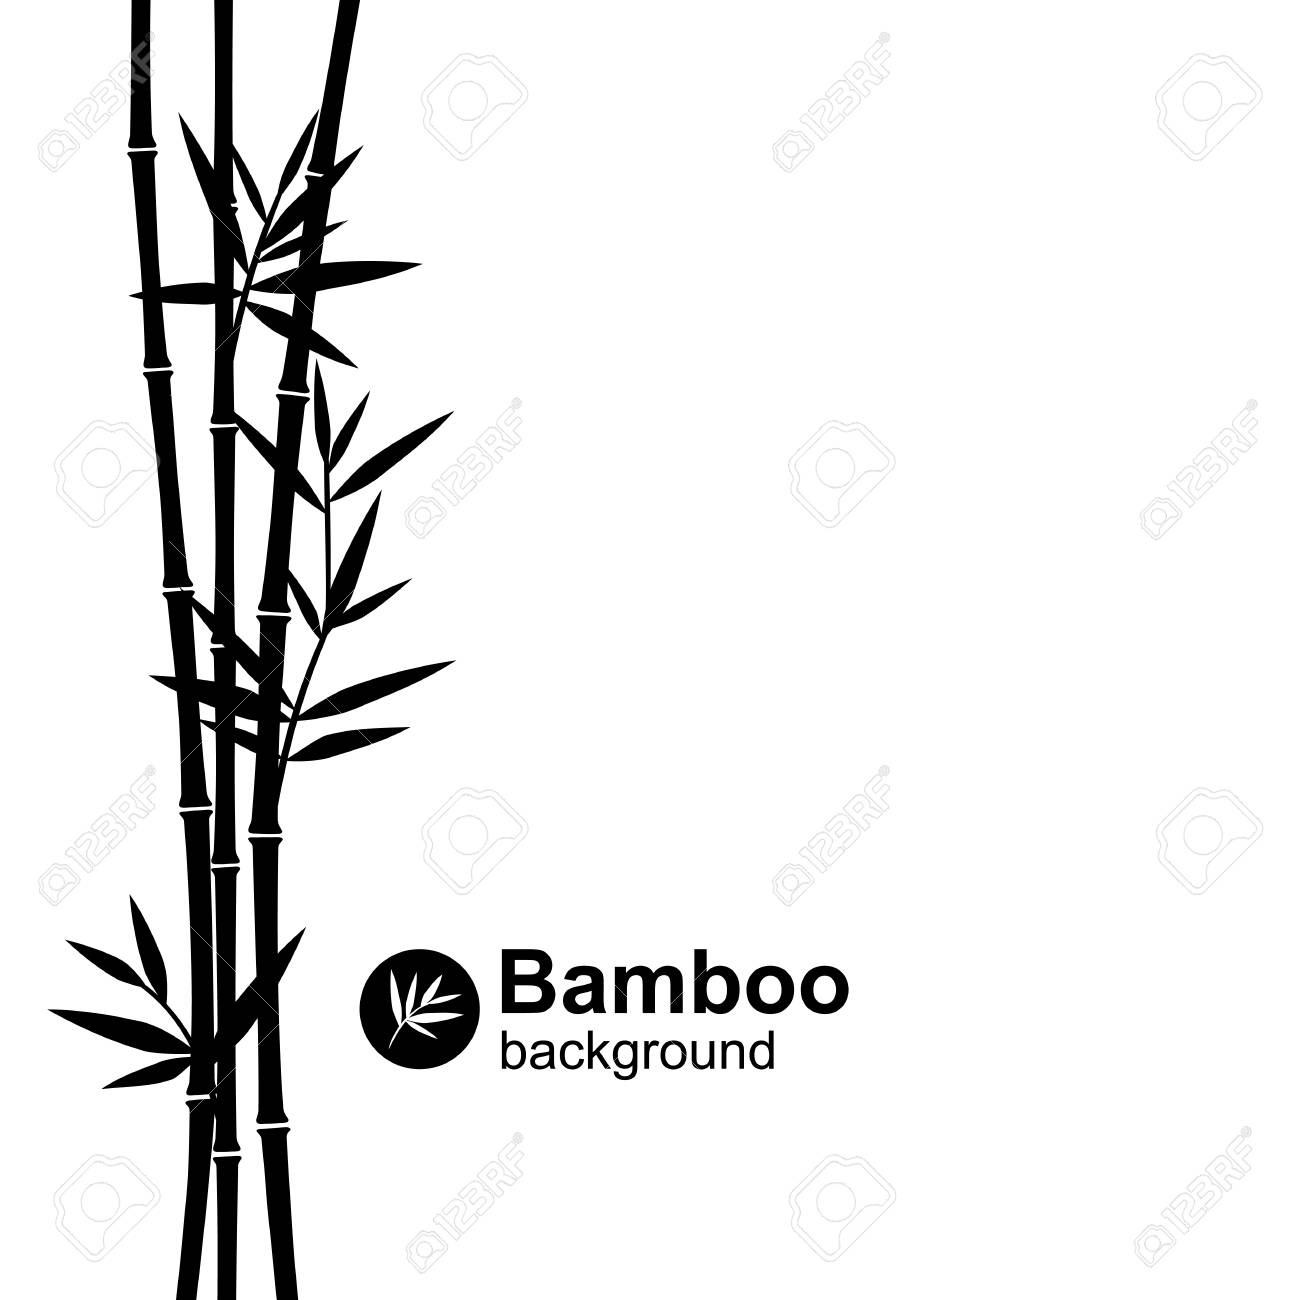 bamboo background vector royalty free cliparts vectors and stock illustration image 68311369 bamboo background vector